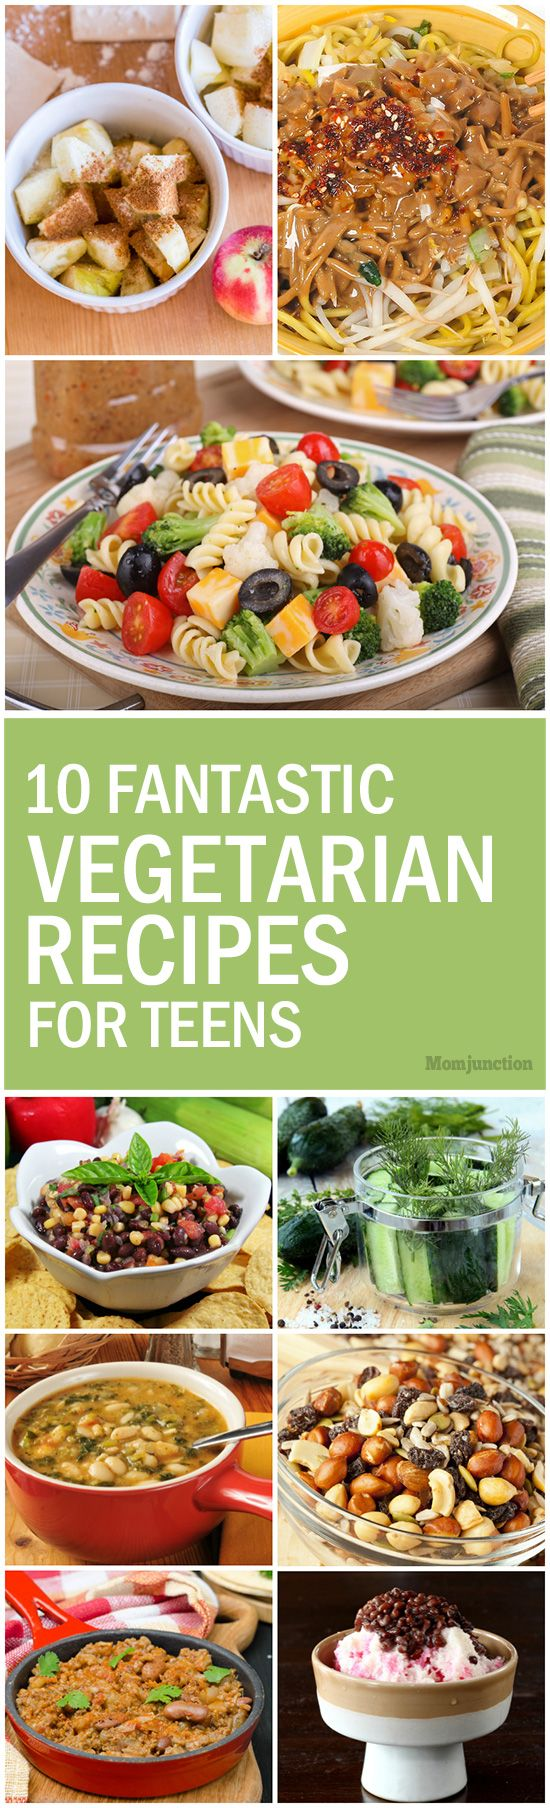 Best 25 healthy vegetarian foods ideas on pinterest healthy 10 fantastic vegetarian recipes for teens vegetarian cuisinevegetarian dinnershealthy forumfinder Choice Image